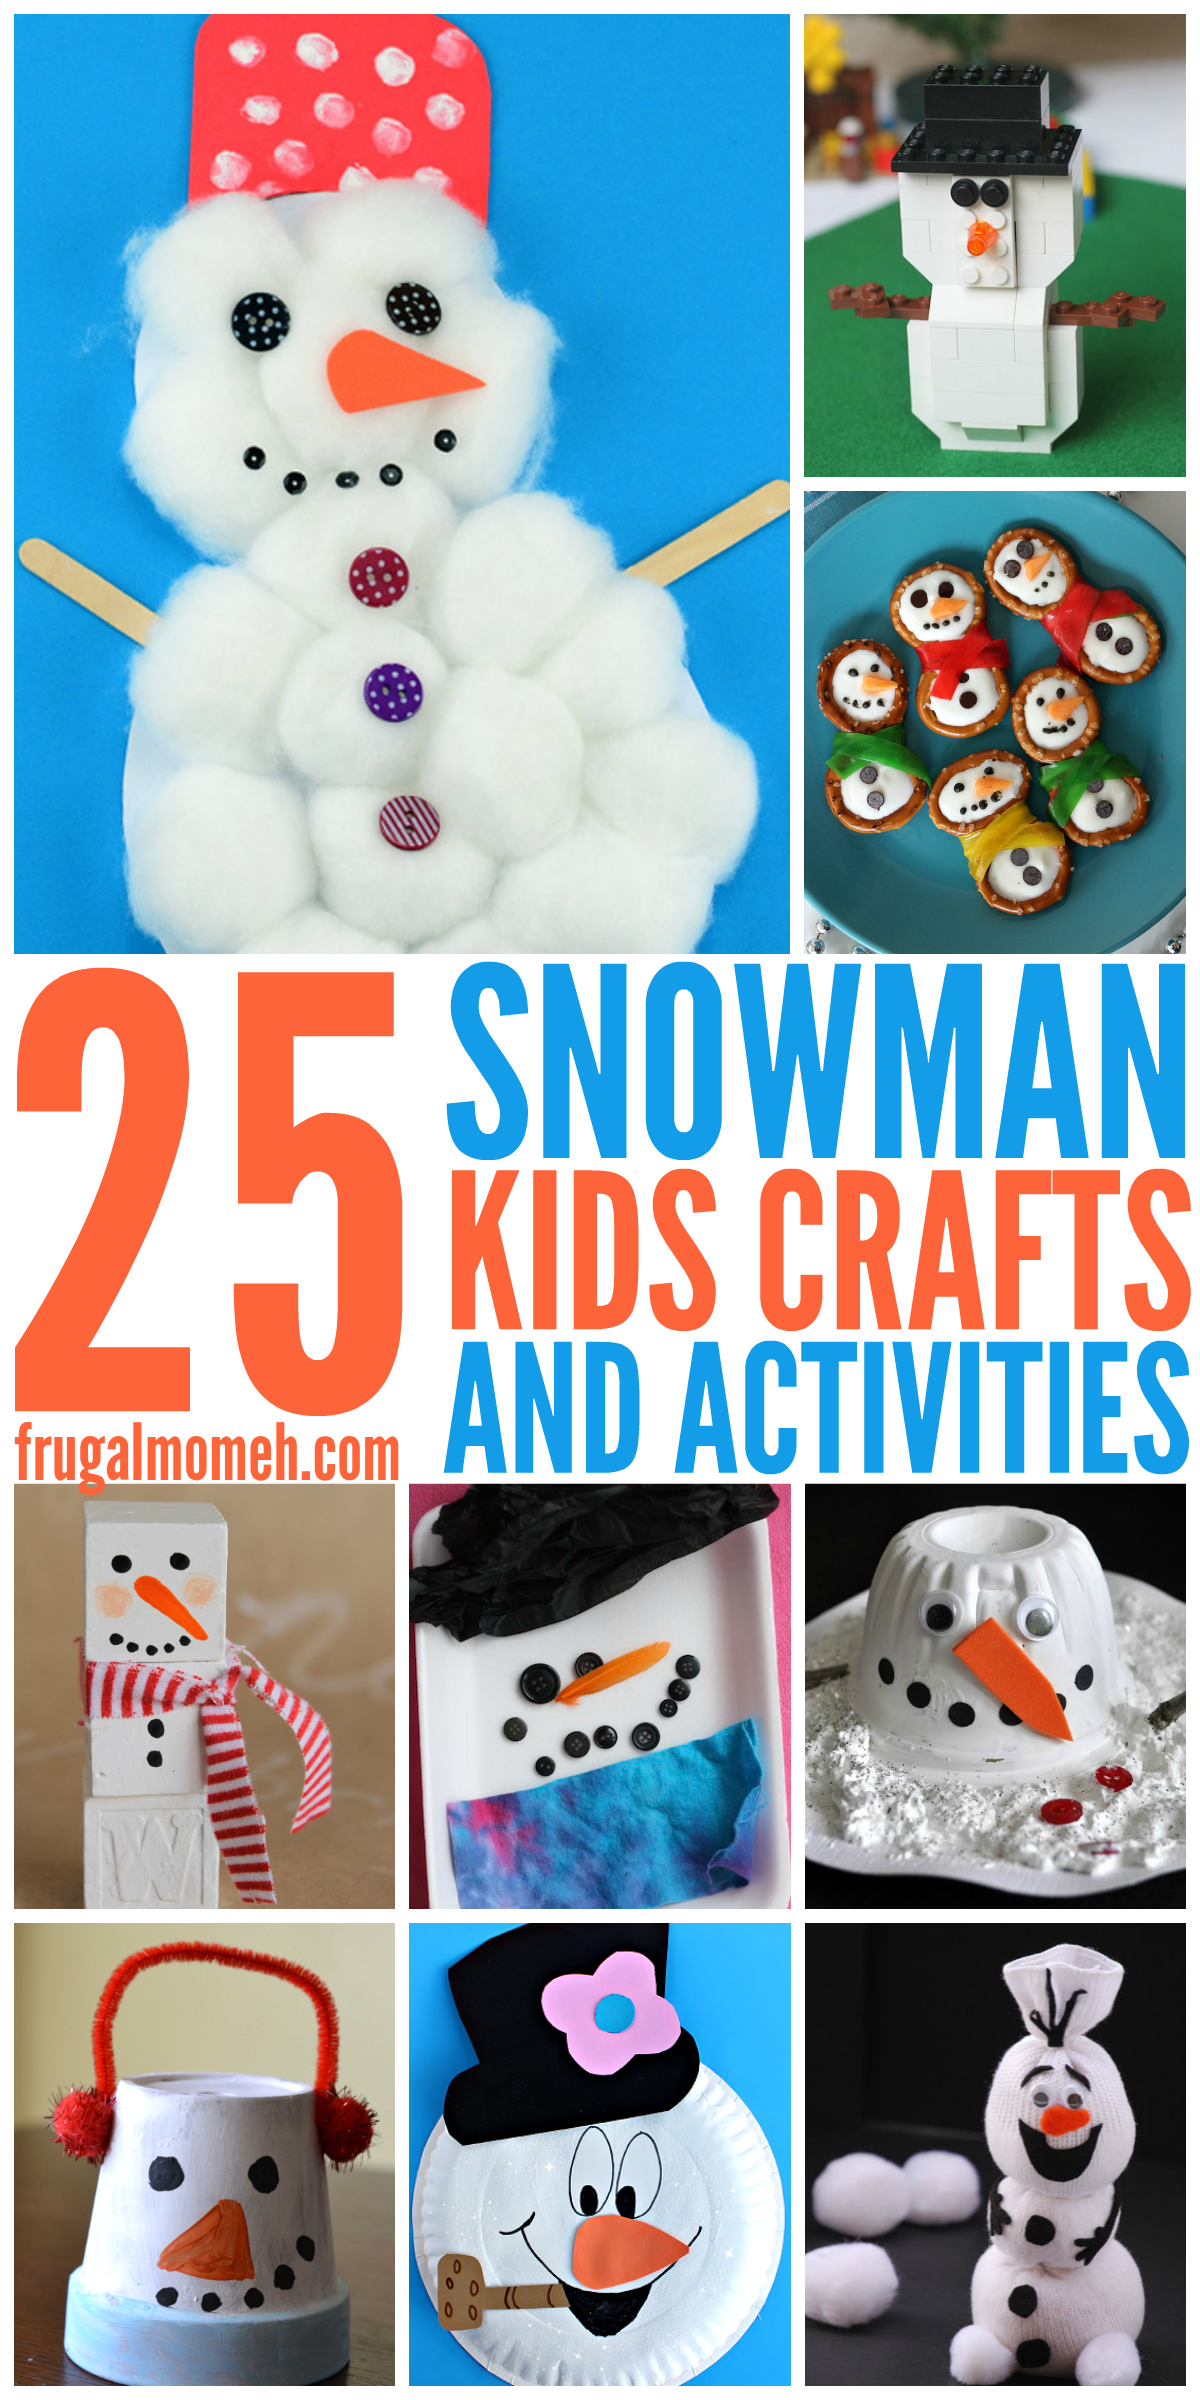 Snowman Crafts & Activities For Kids To Keep Children Busy